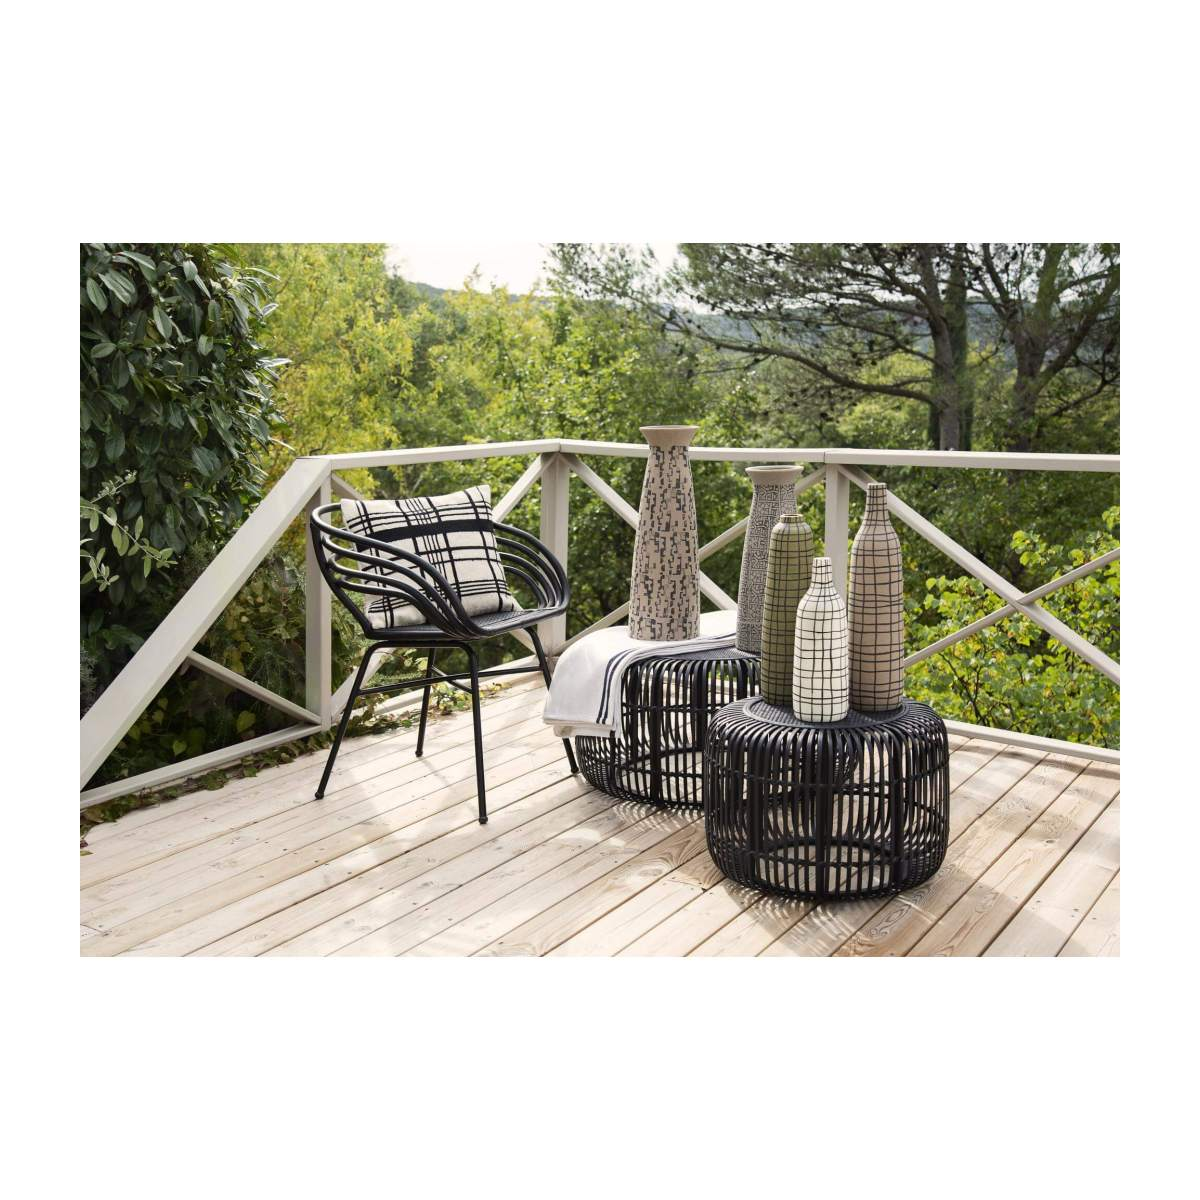 Set de 2 tables basses rondes en Rotin - Noir n°9